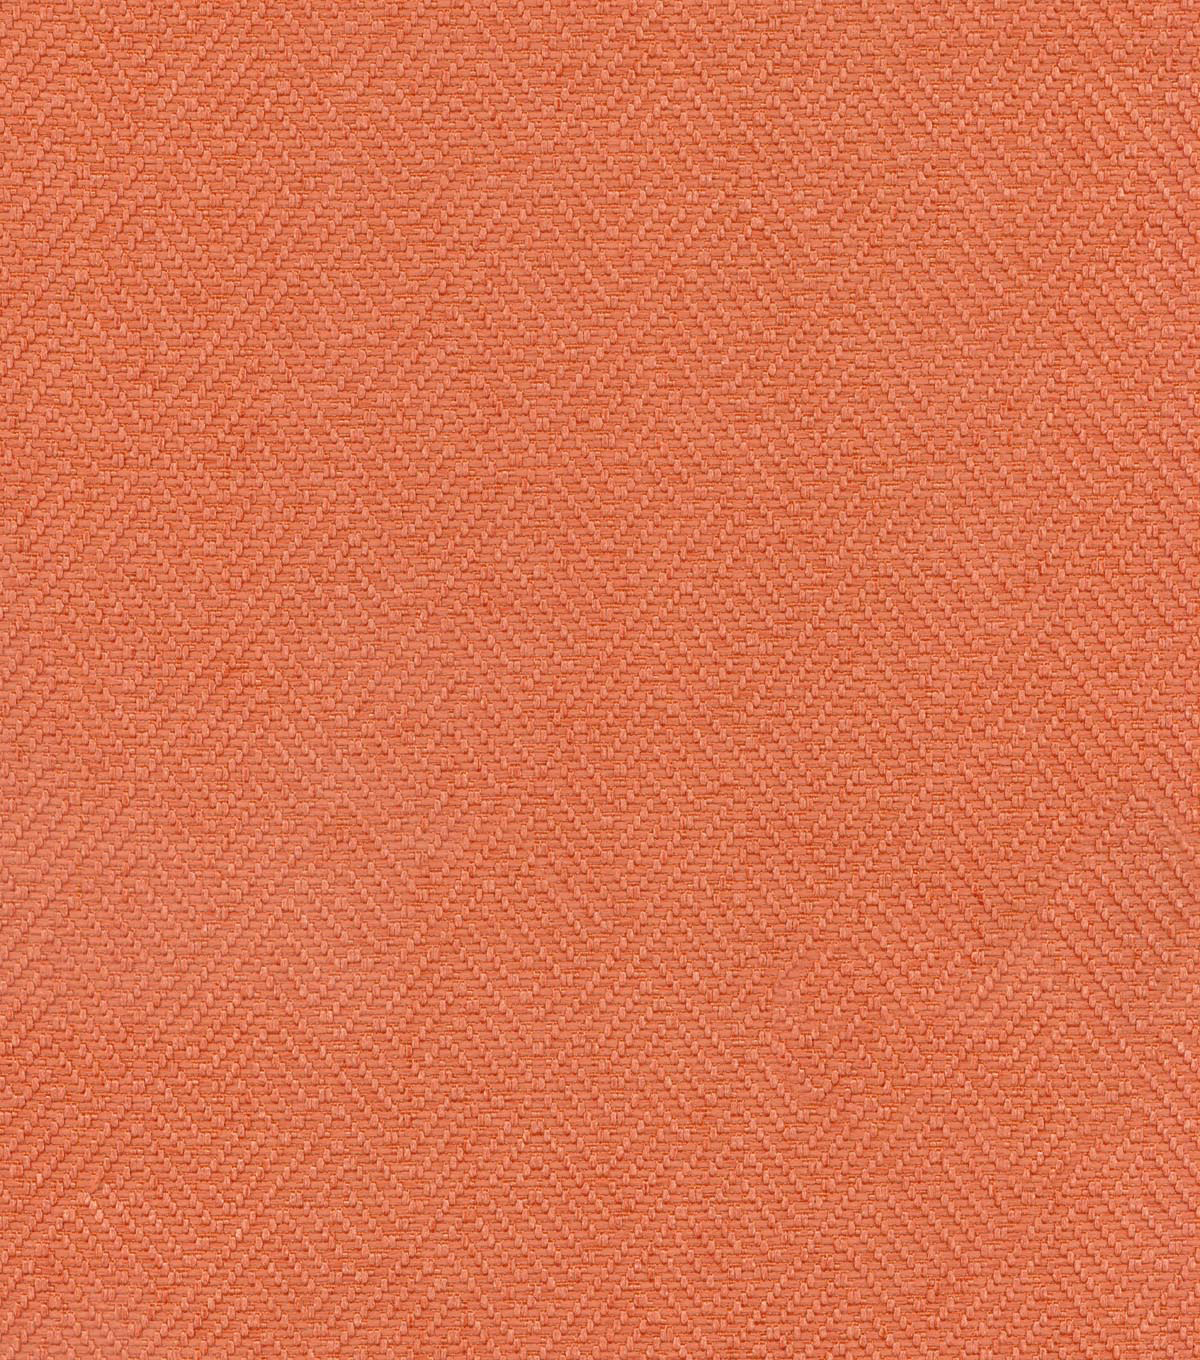 Home Decor 8\u0022x8\u0022 Swatch Fabric-PK Lifestyles Basketry Clay